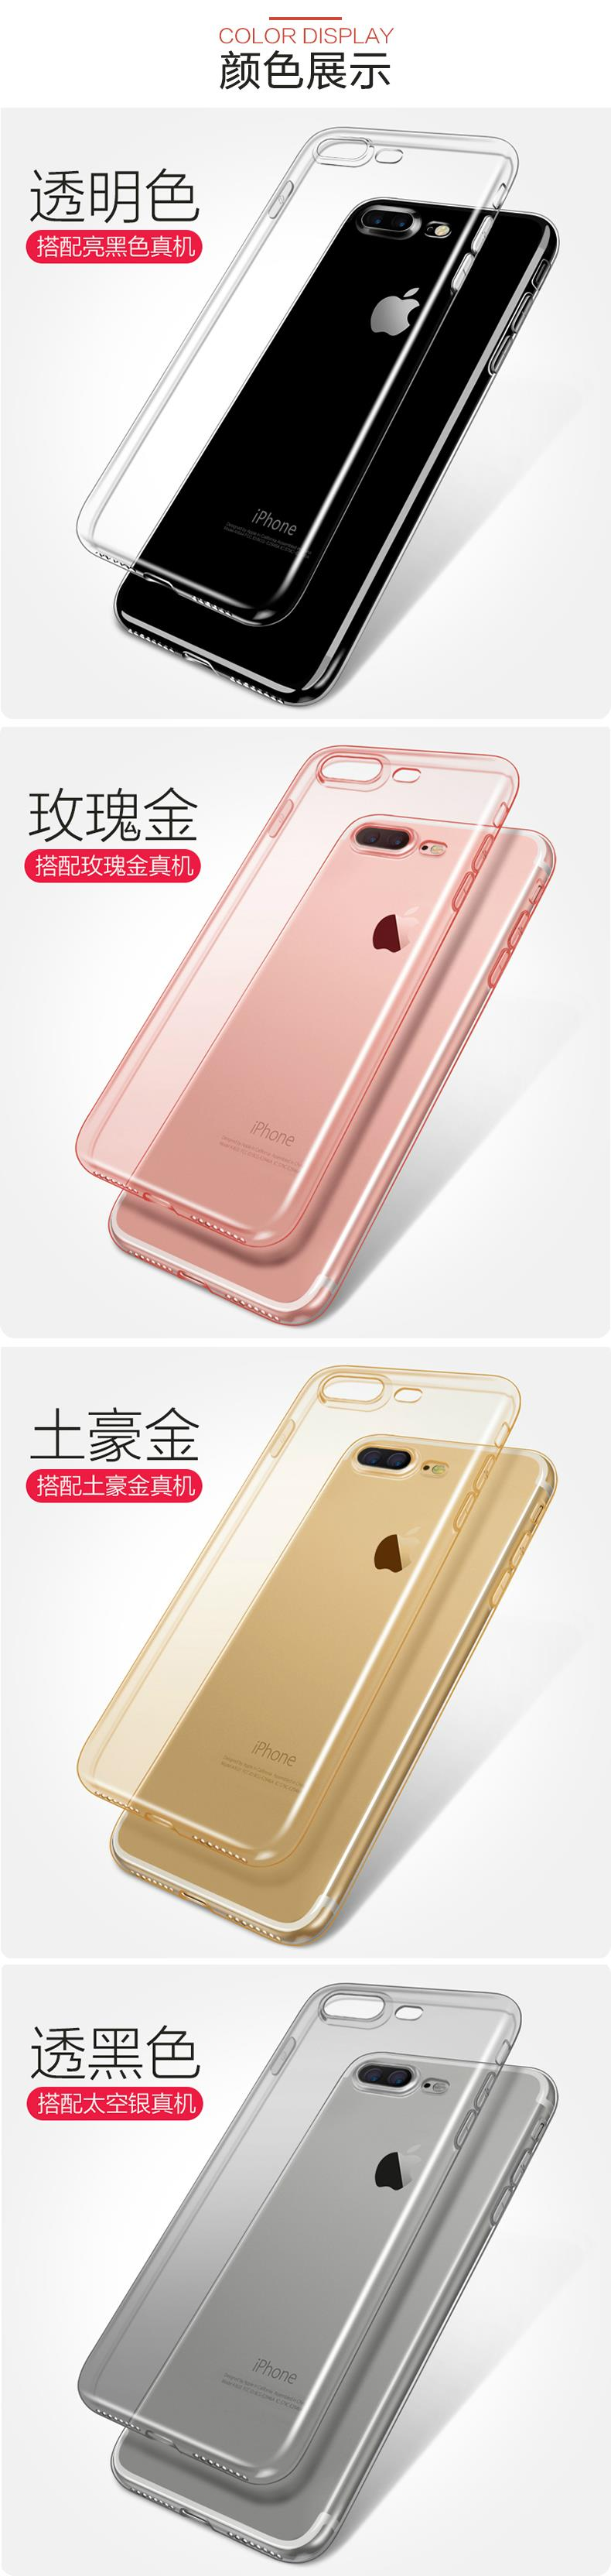 SAISKAI Iphone 7 Plus Ultra Slim Transparent TPU Case +Tempered Glass